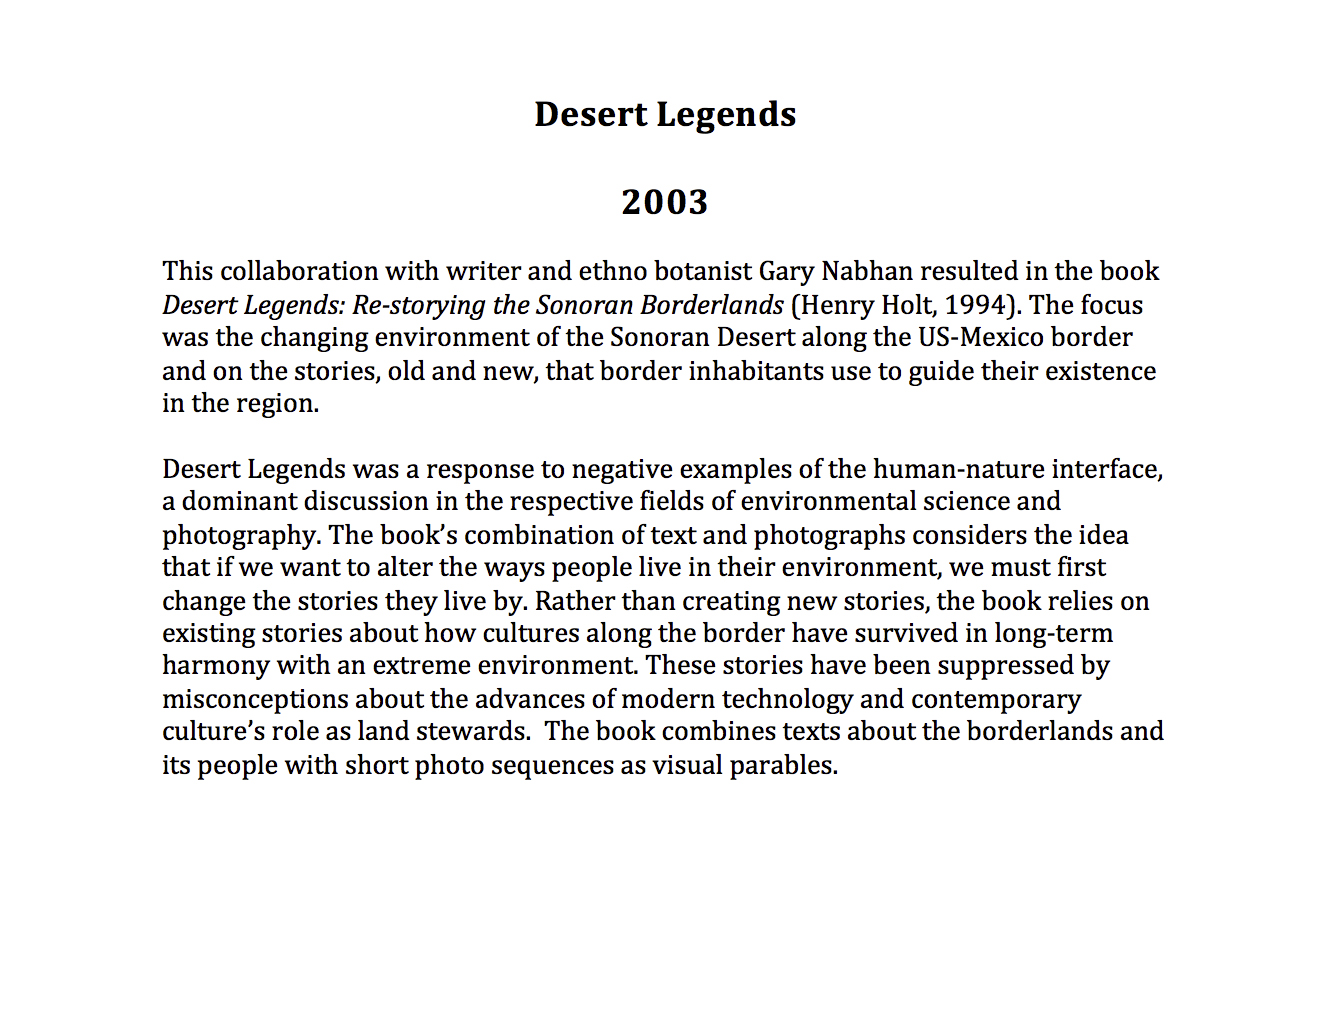 Desert Legends statement.jpg